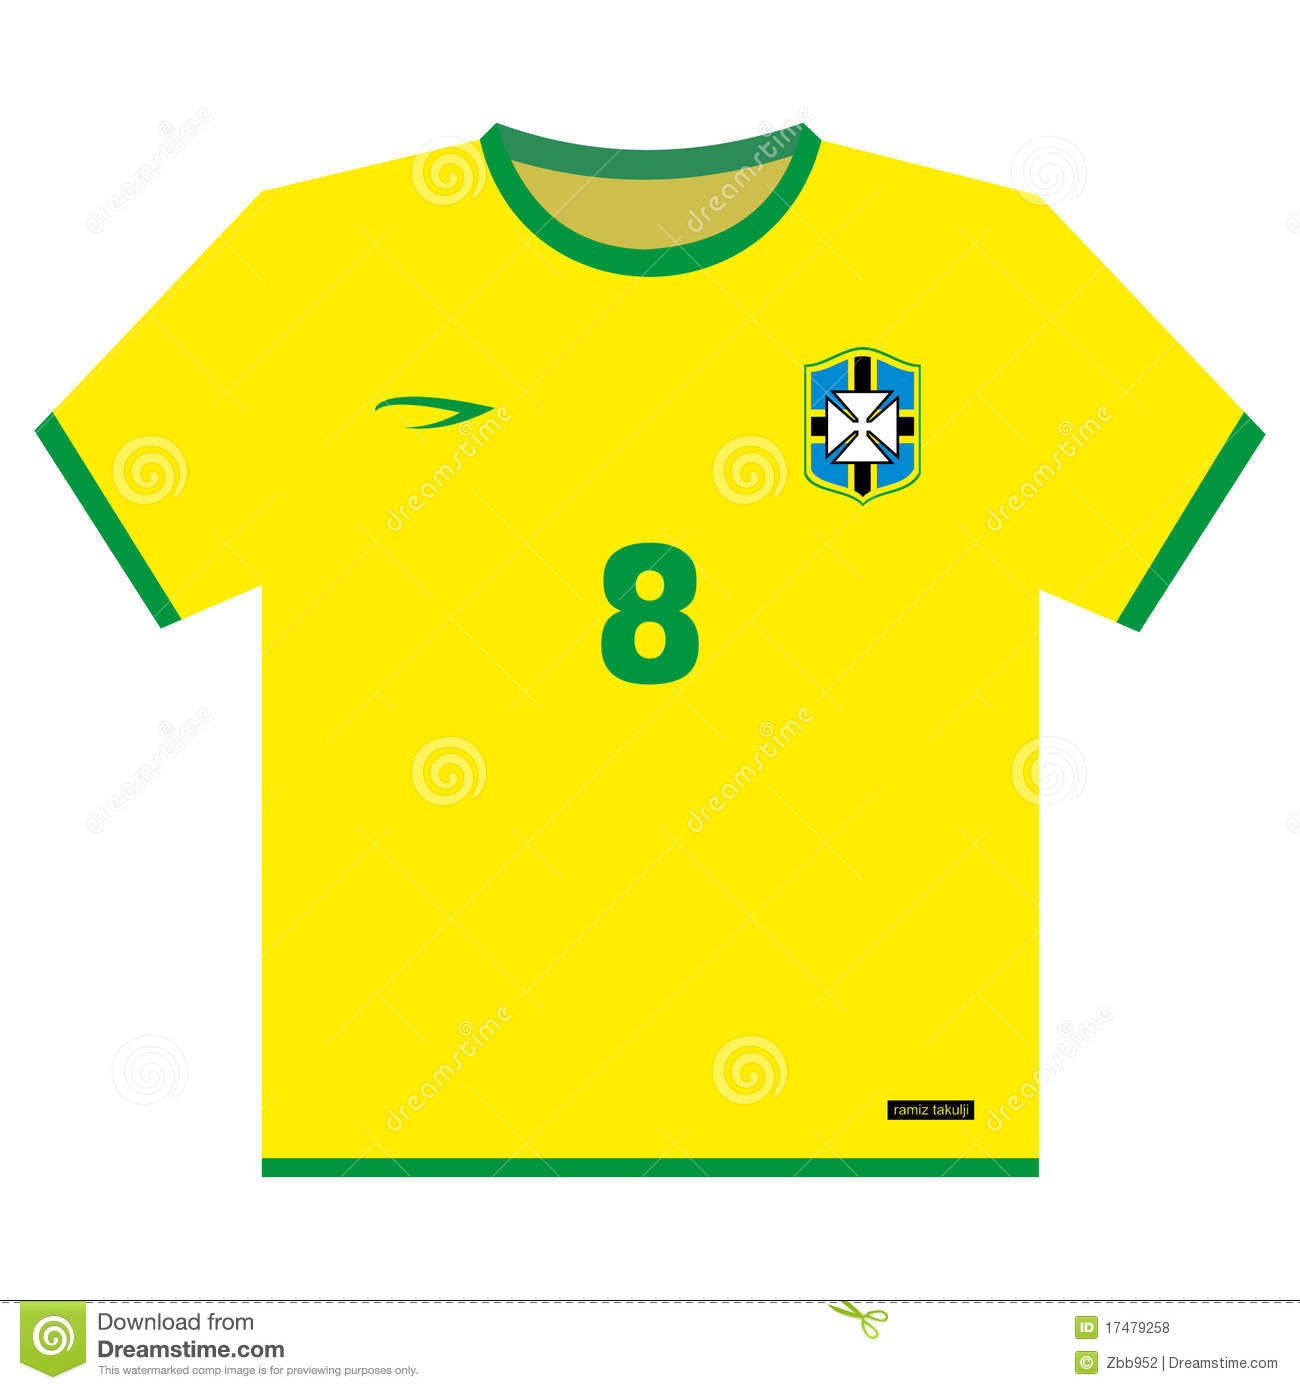 Jersey clipart soccer kit Transparent pictures on F.